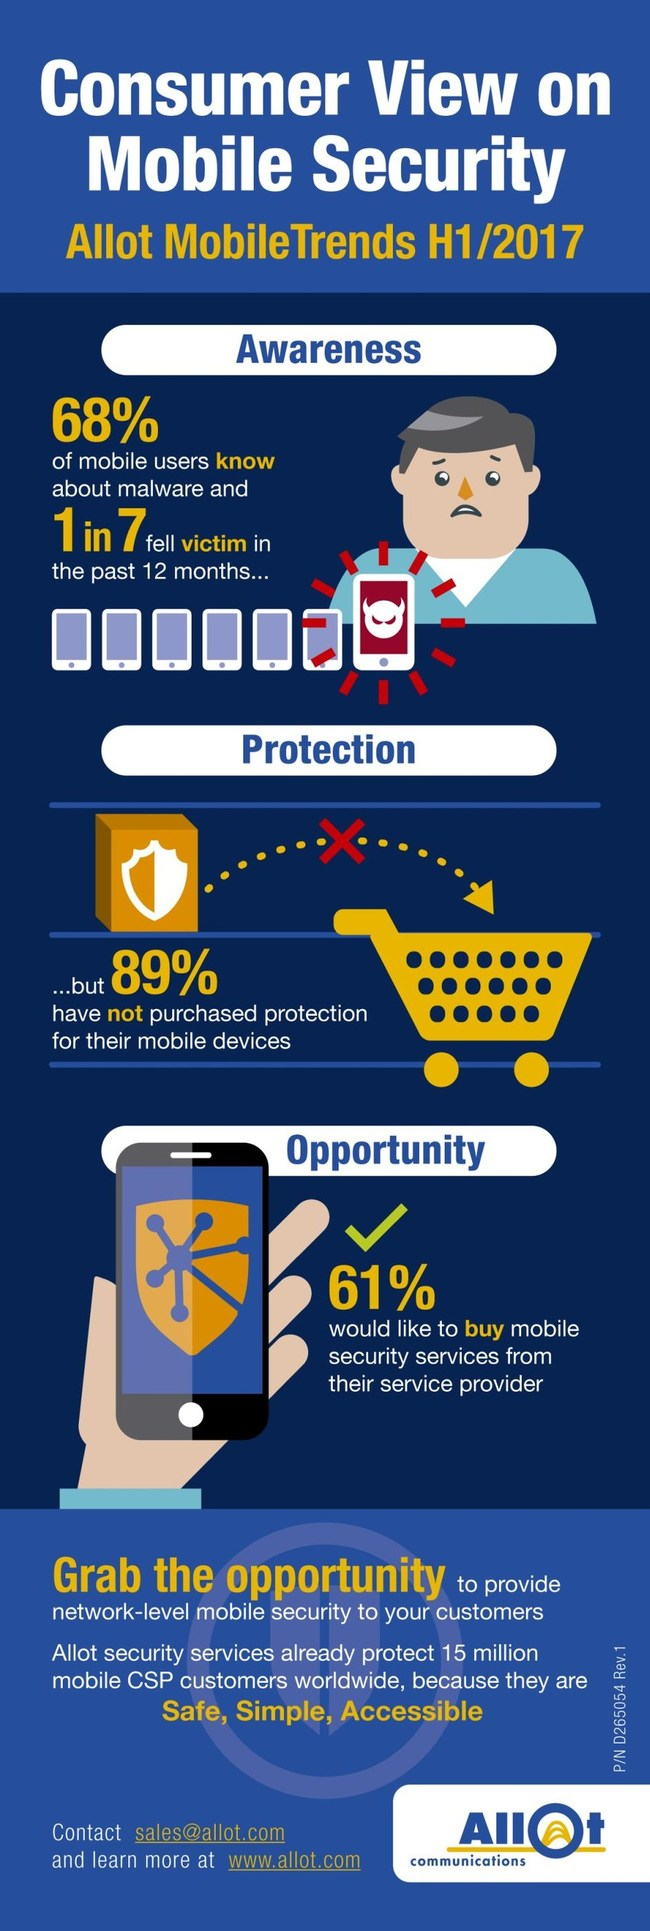 Mobile Security: What are consumers telling their communication service providers?